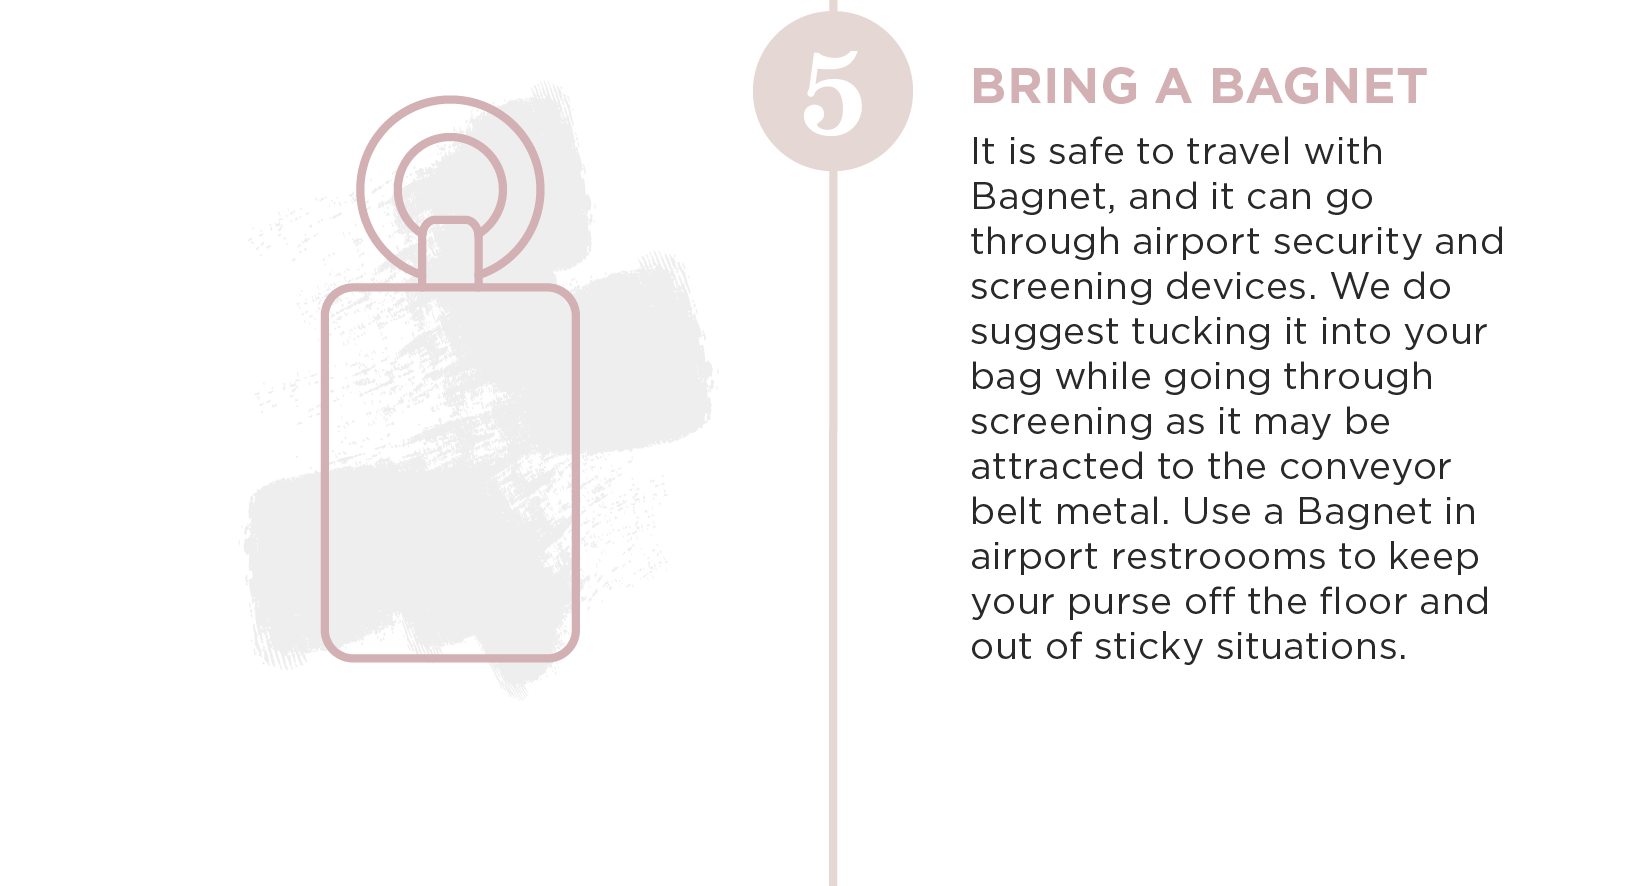 Bring a Bagnet. It is safe to travel with Bagnet, and it can go through airport security and screening devices. We do suggest tucking it into your bag while going through screening as it may be attracted to the conveyor belt metal. Use a Bagnet in Airport restrooms, keep your purse off the floor and out of sticky situations.